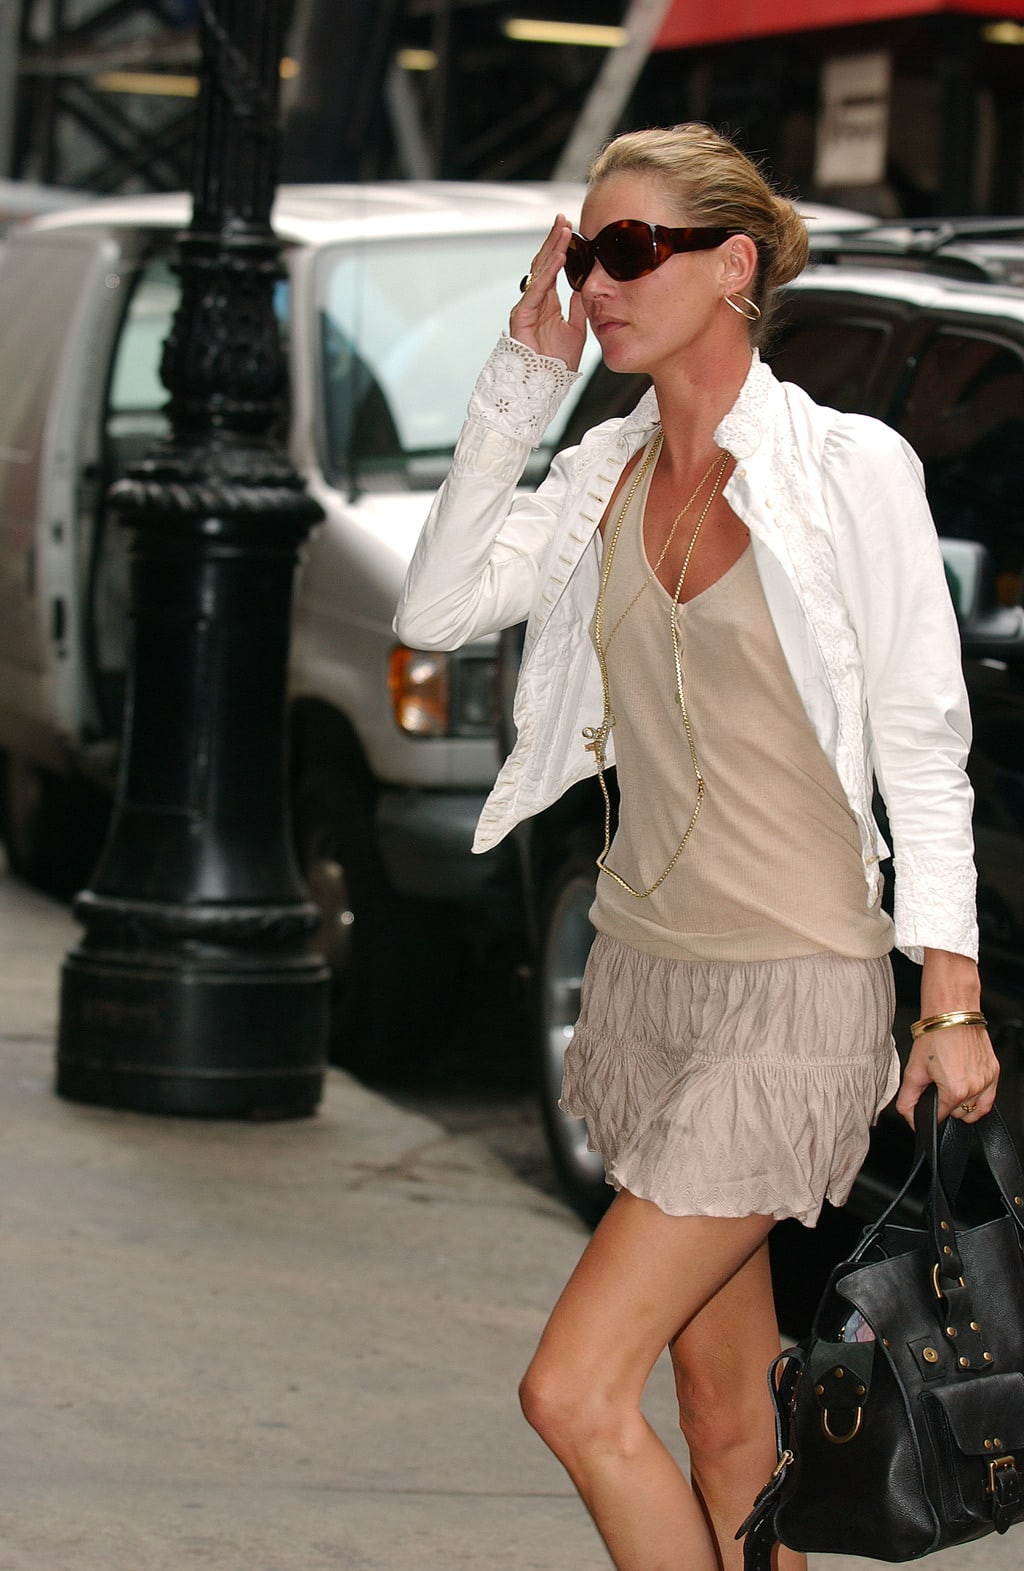 kate moss in a nude colored outfit and white jacket carrying a black tote bag